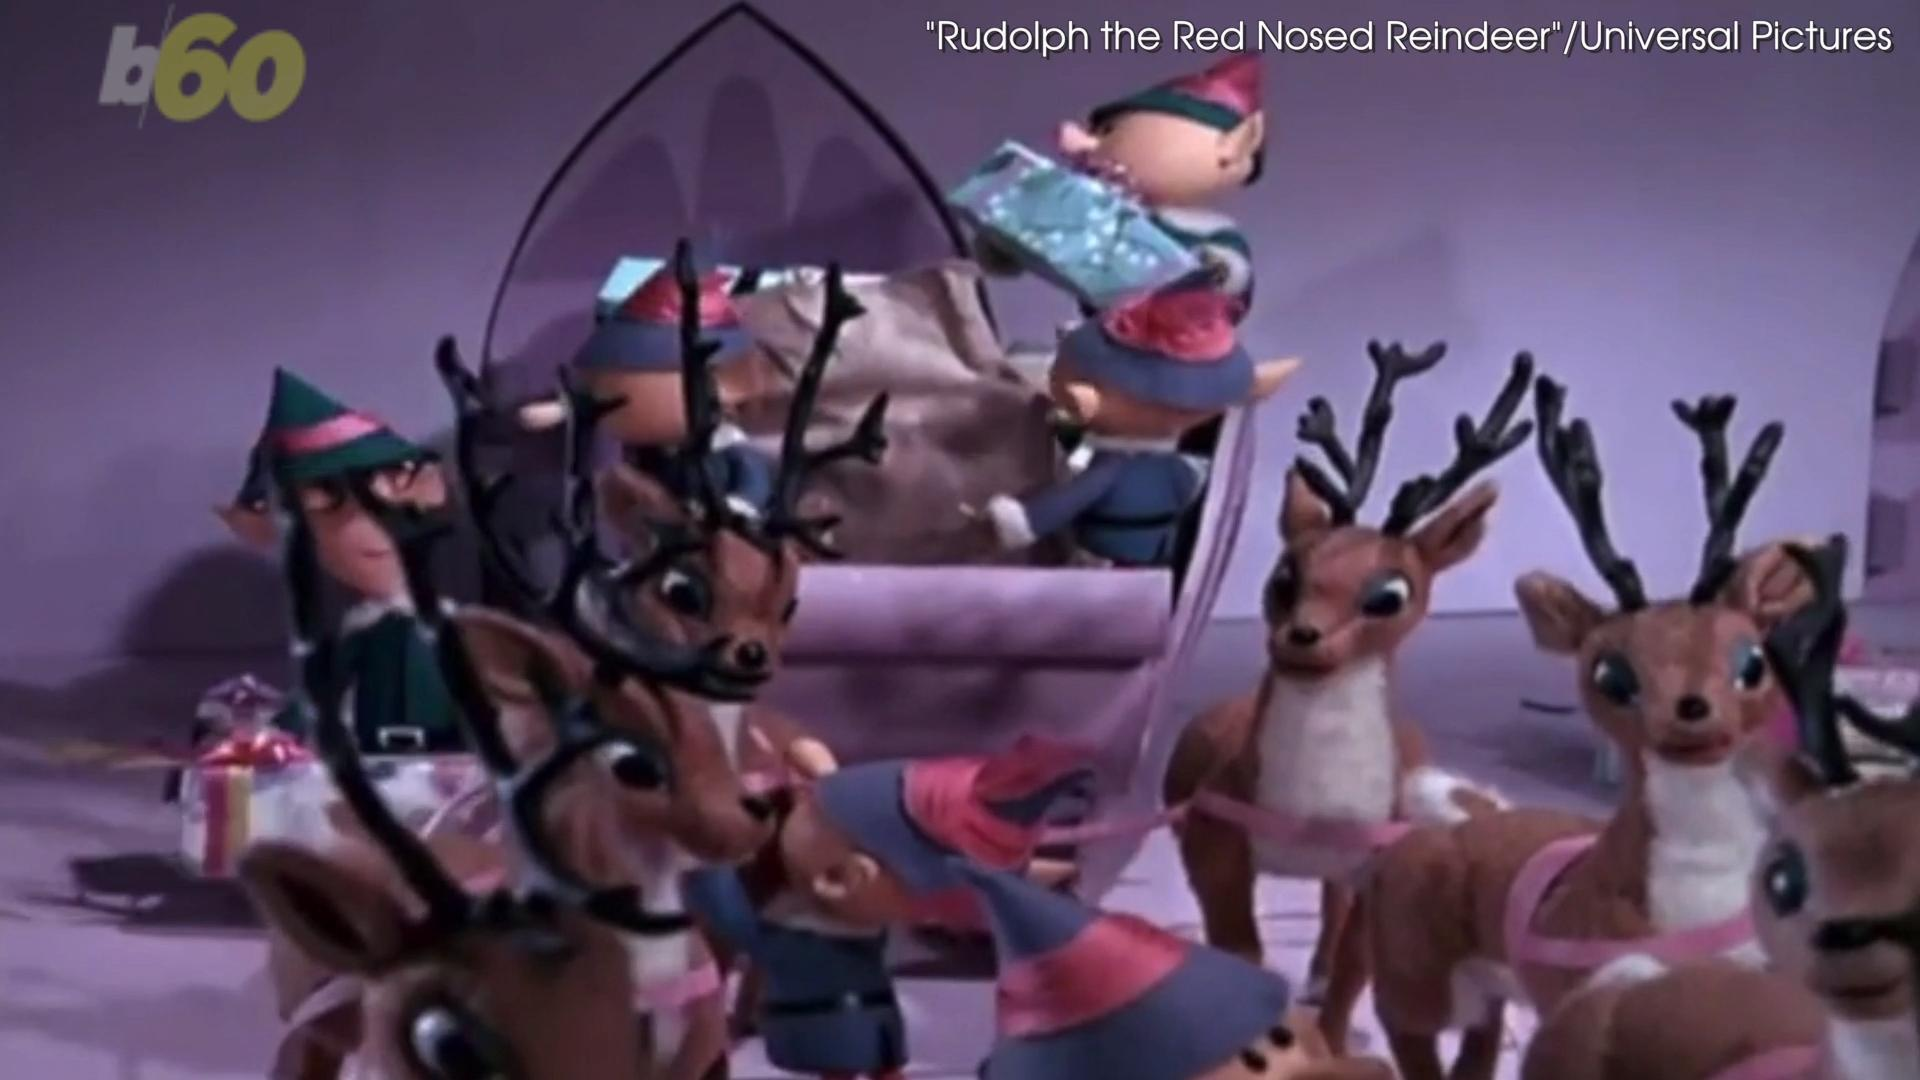 santas reindeer are all female zoologists say - Pictures Of Reindeer